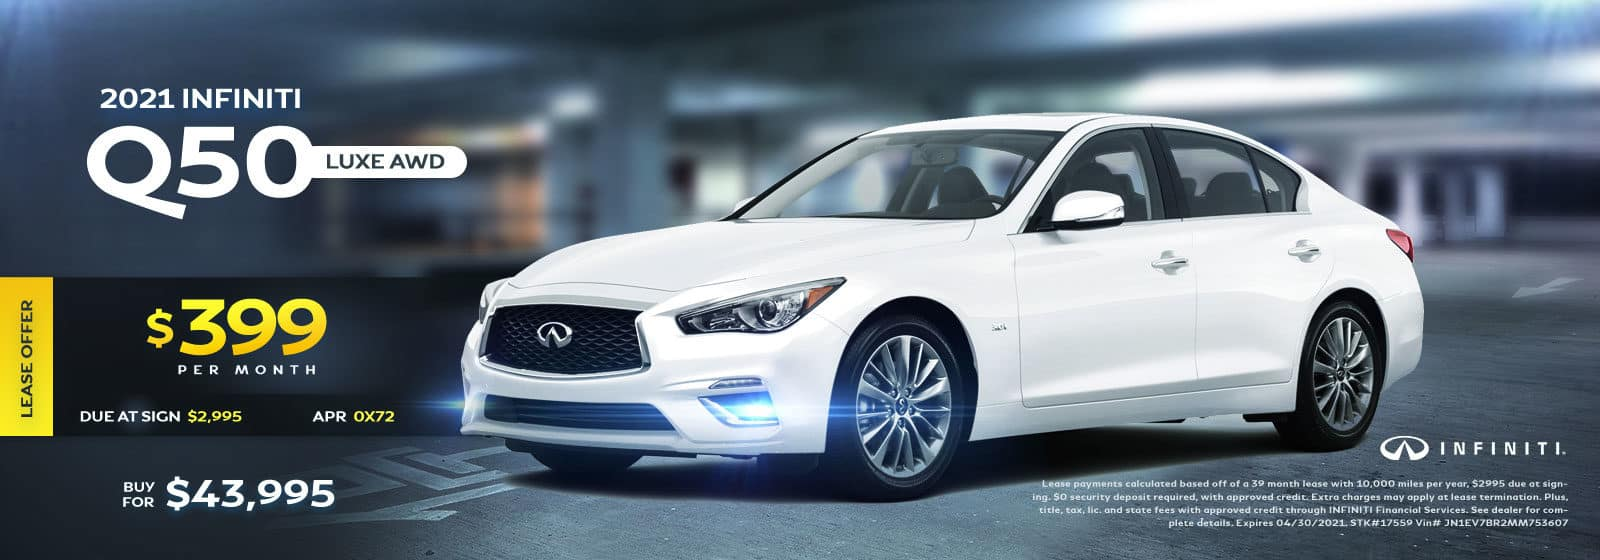 2021 Q50 Luxe AWD April 2021 Offers